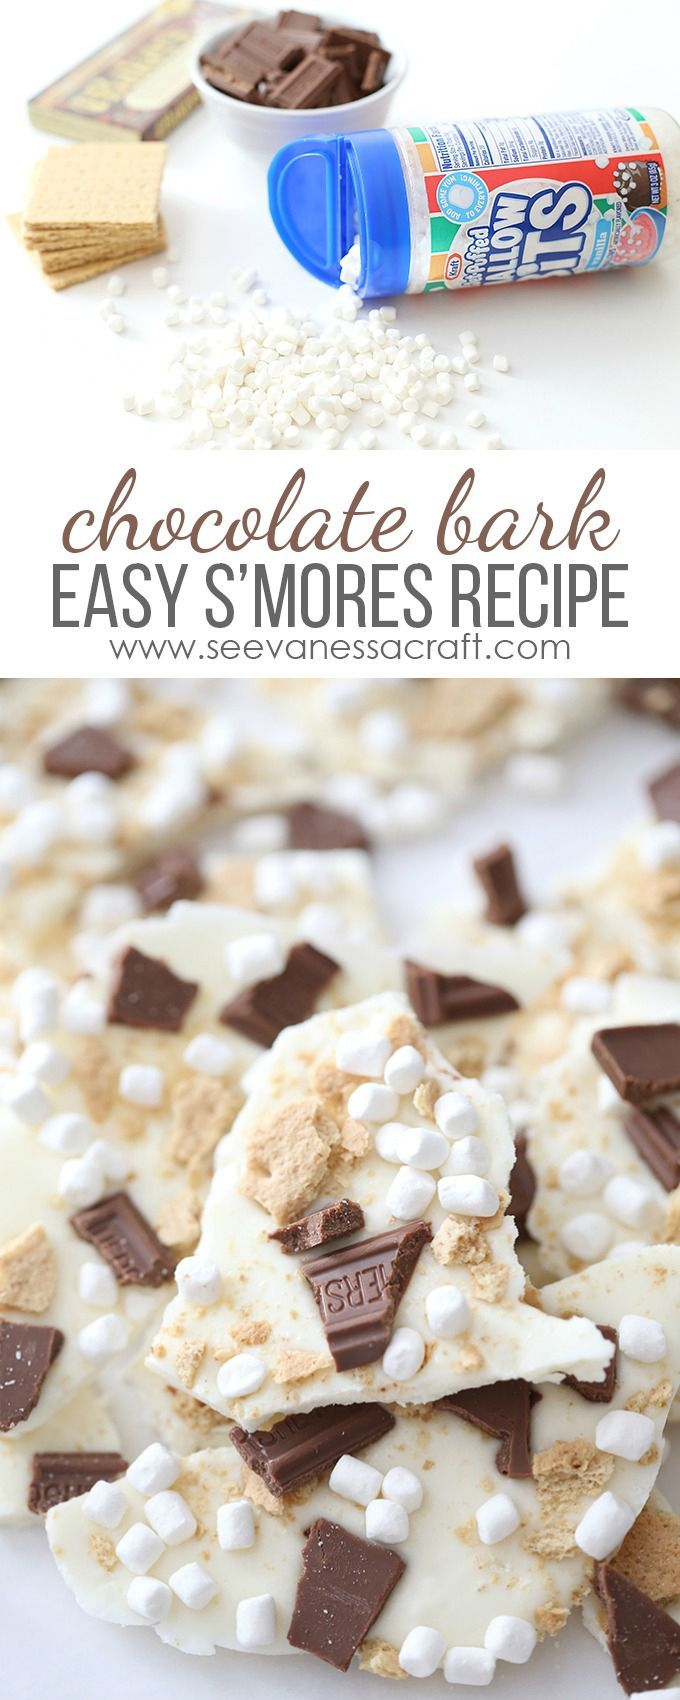 Make a batch of S'mores Chocolate Bark for a camping themed party treat or rustic wedding party favor. Easy marshmallow recipe! /kraftjetpuffed/ #ad #JetPuffed #JetBuffedBlogger